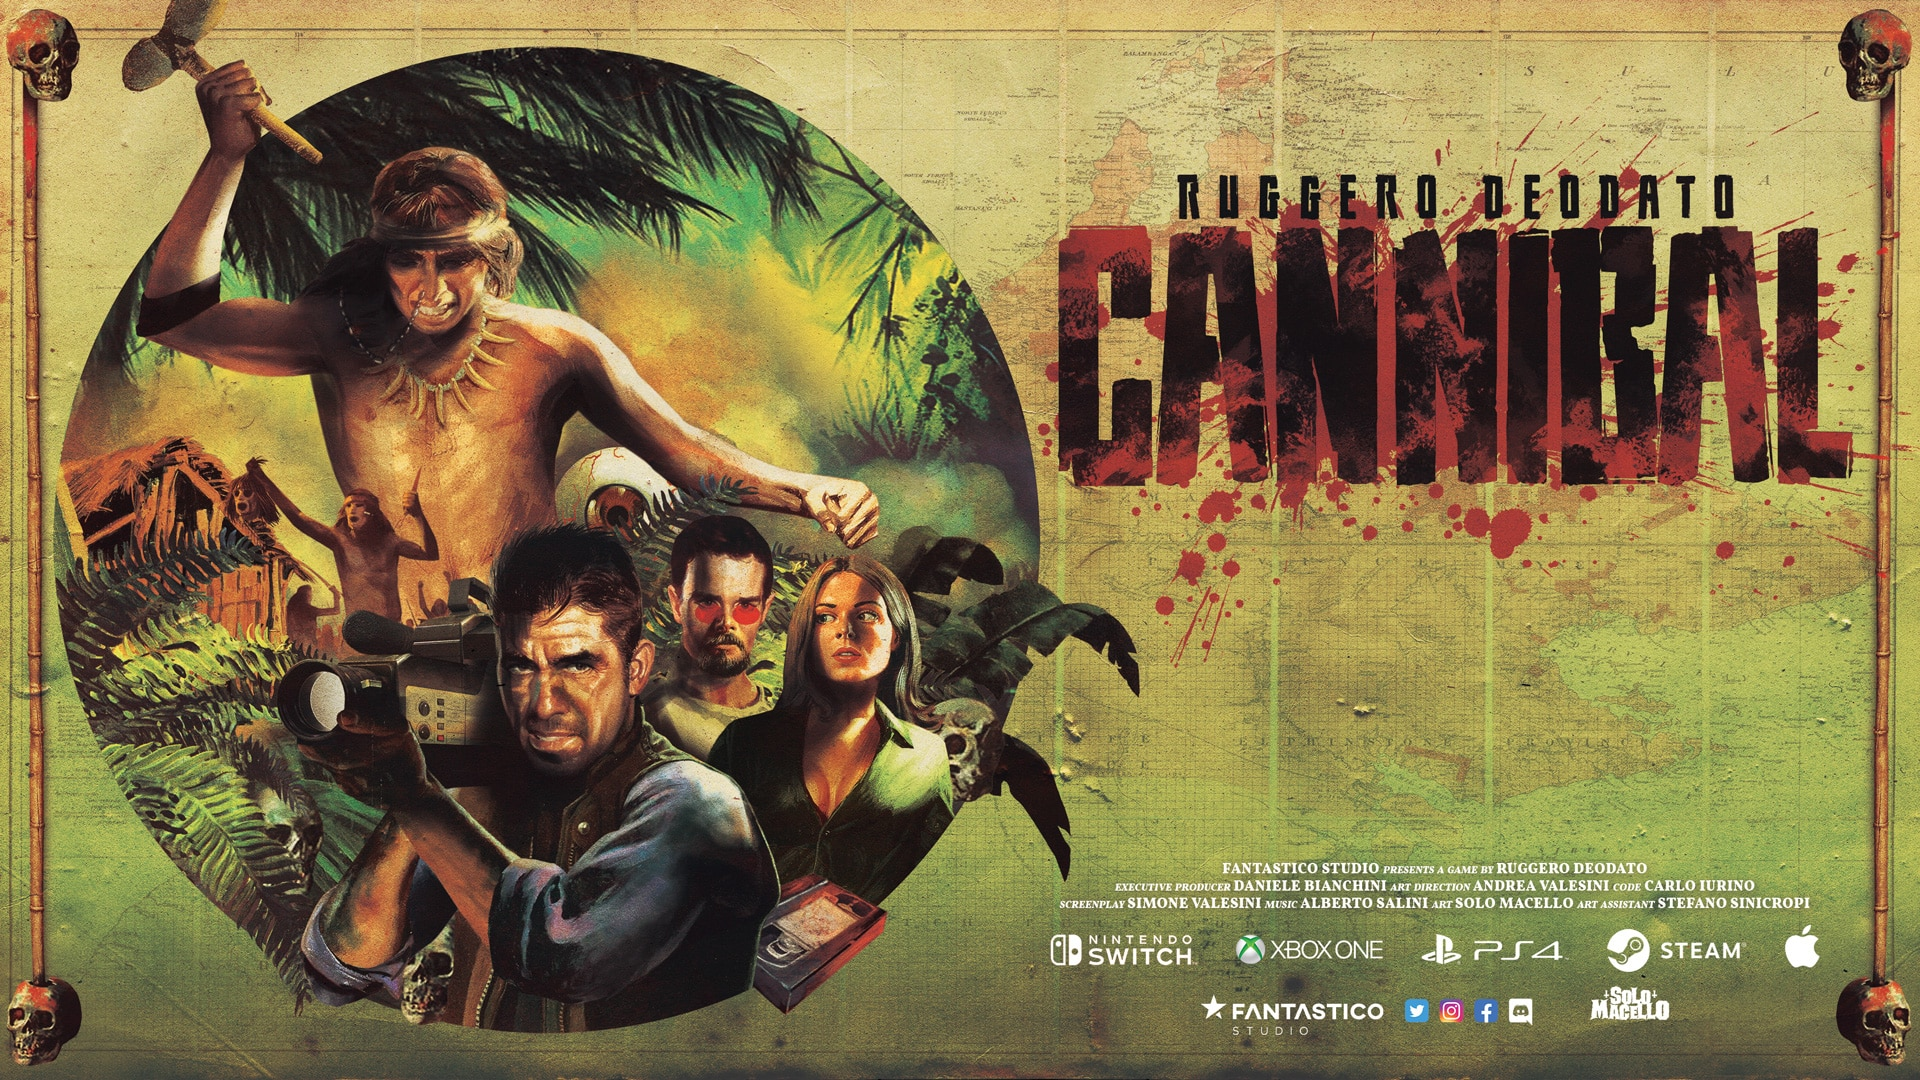 DeodatoCannibal Thumbnail - RUGGERO DEODATO RETURNS TO CANNIBAL HOLOCAUST WITH VIDEO GAME SEQUEL